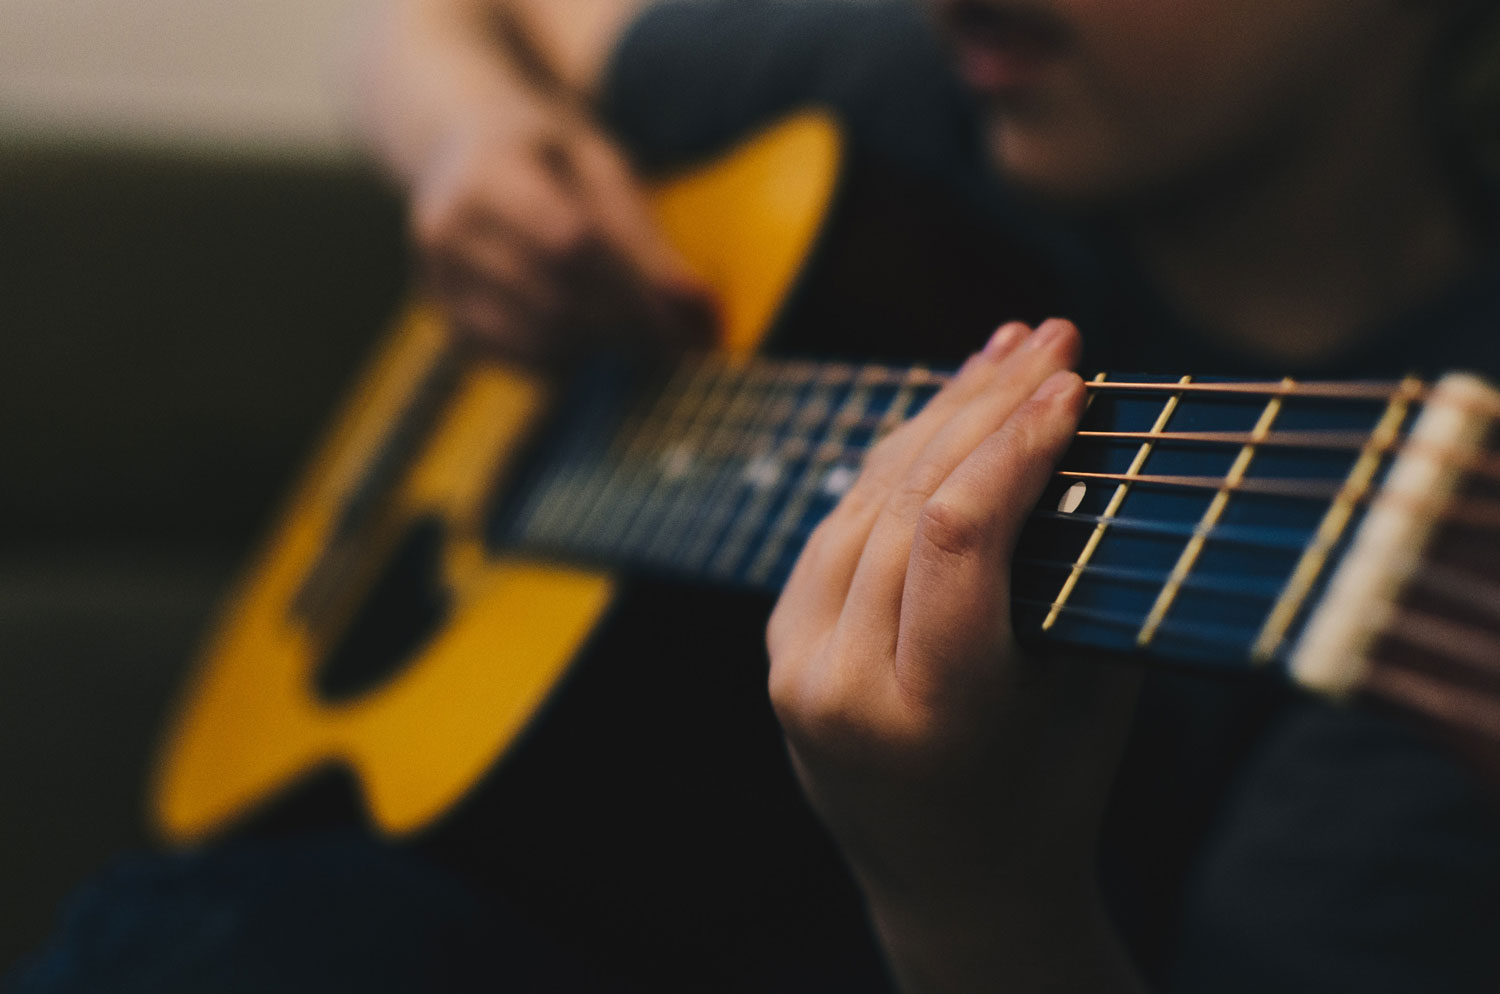 5 Common Songwriter Struggles And How To Overcome Them